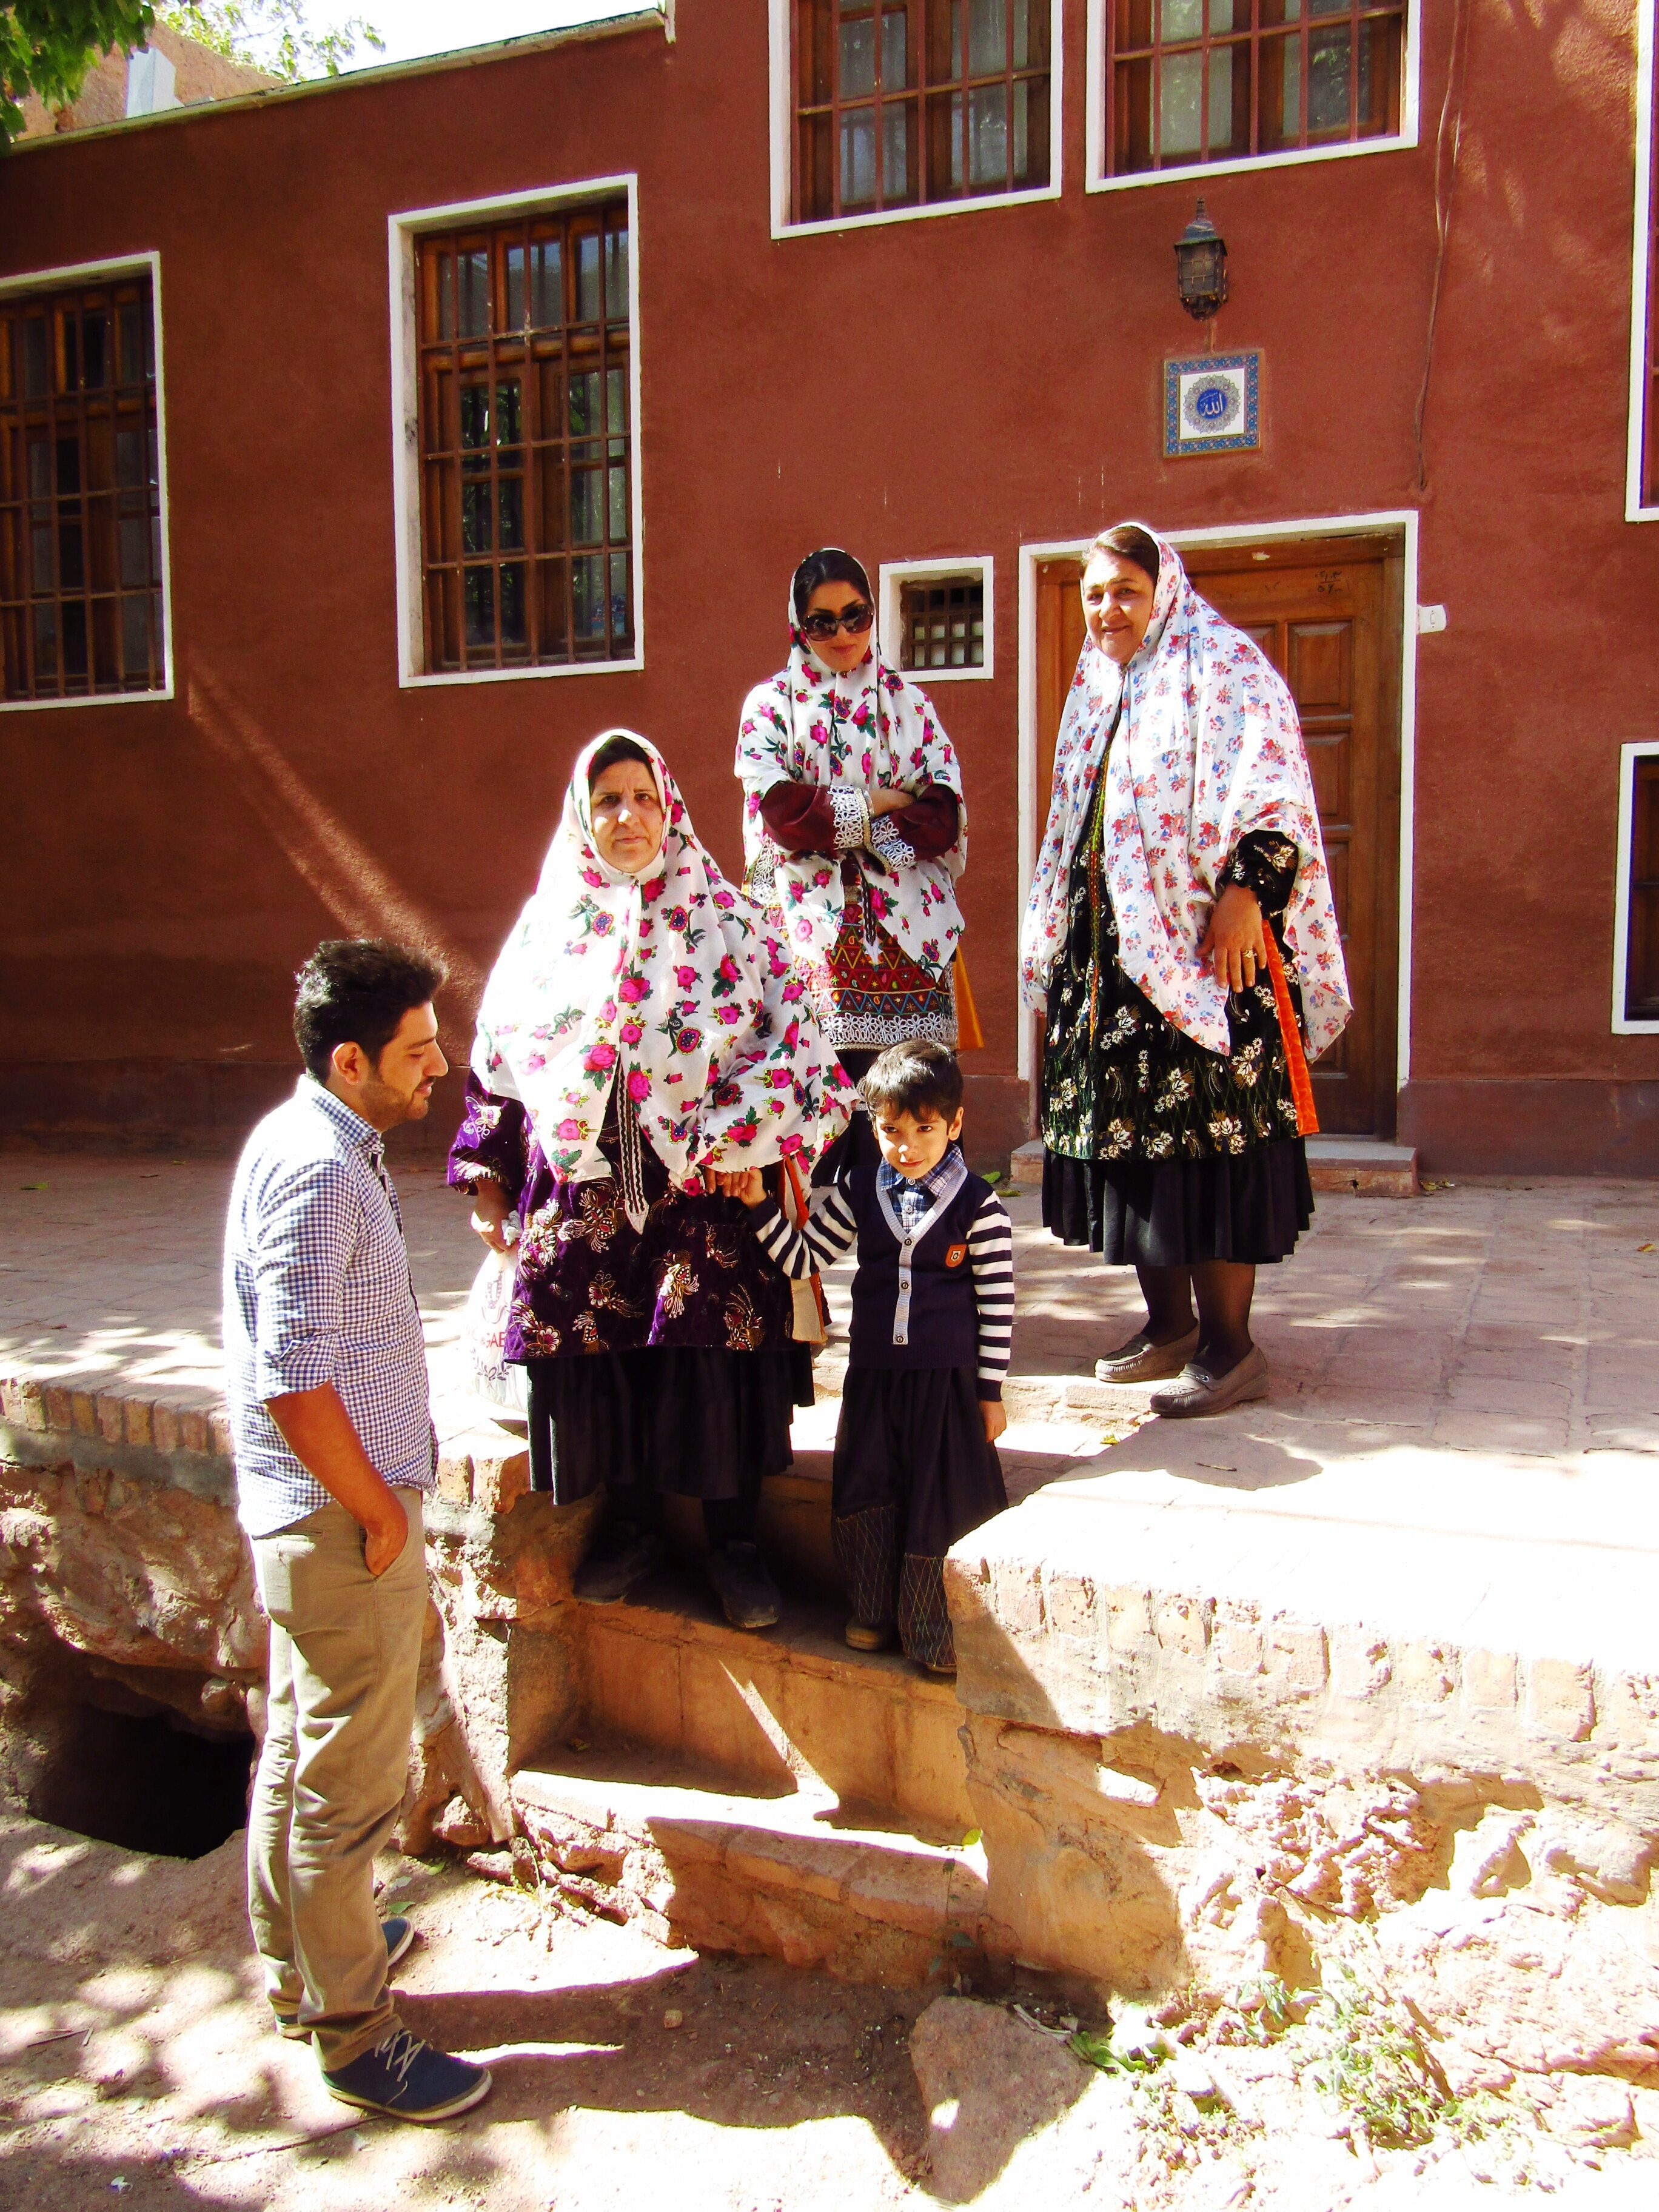 Experiencing Ashura mourning in Abyaneh